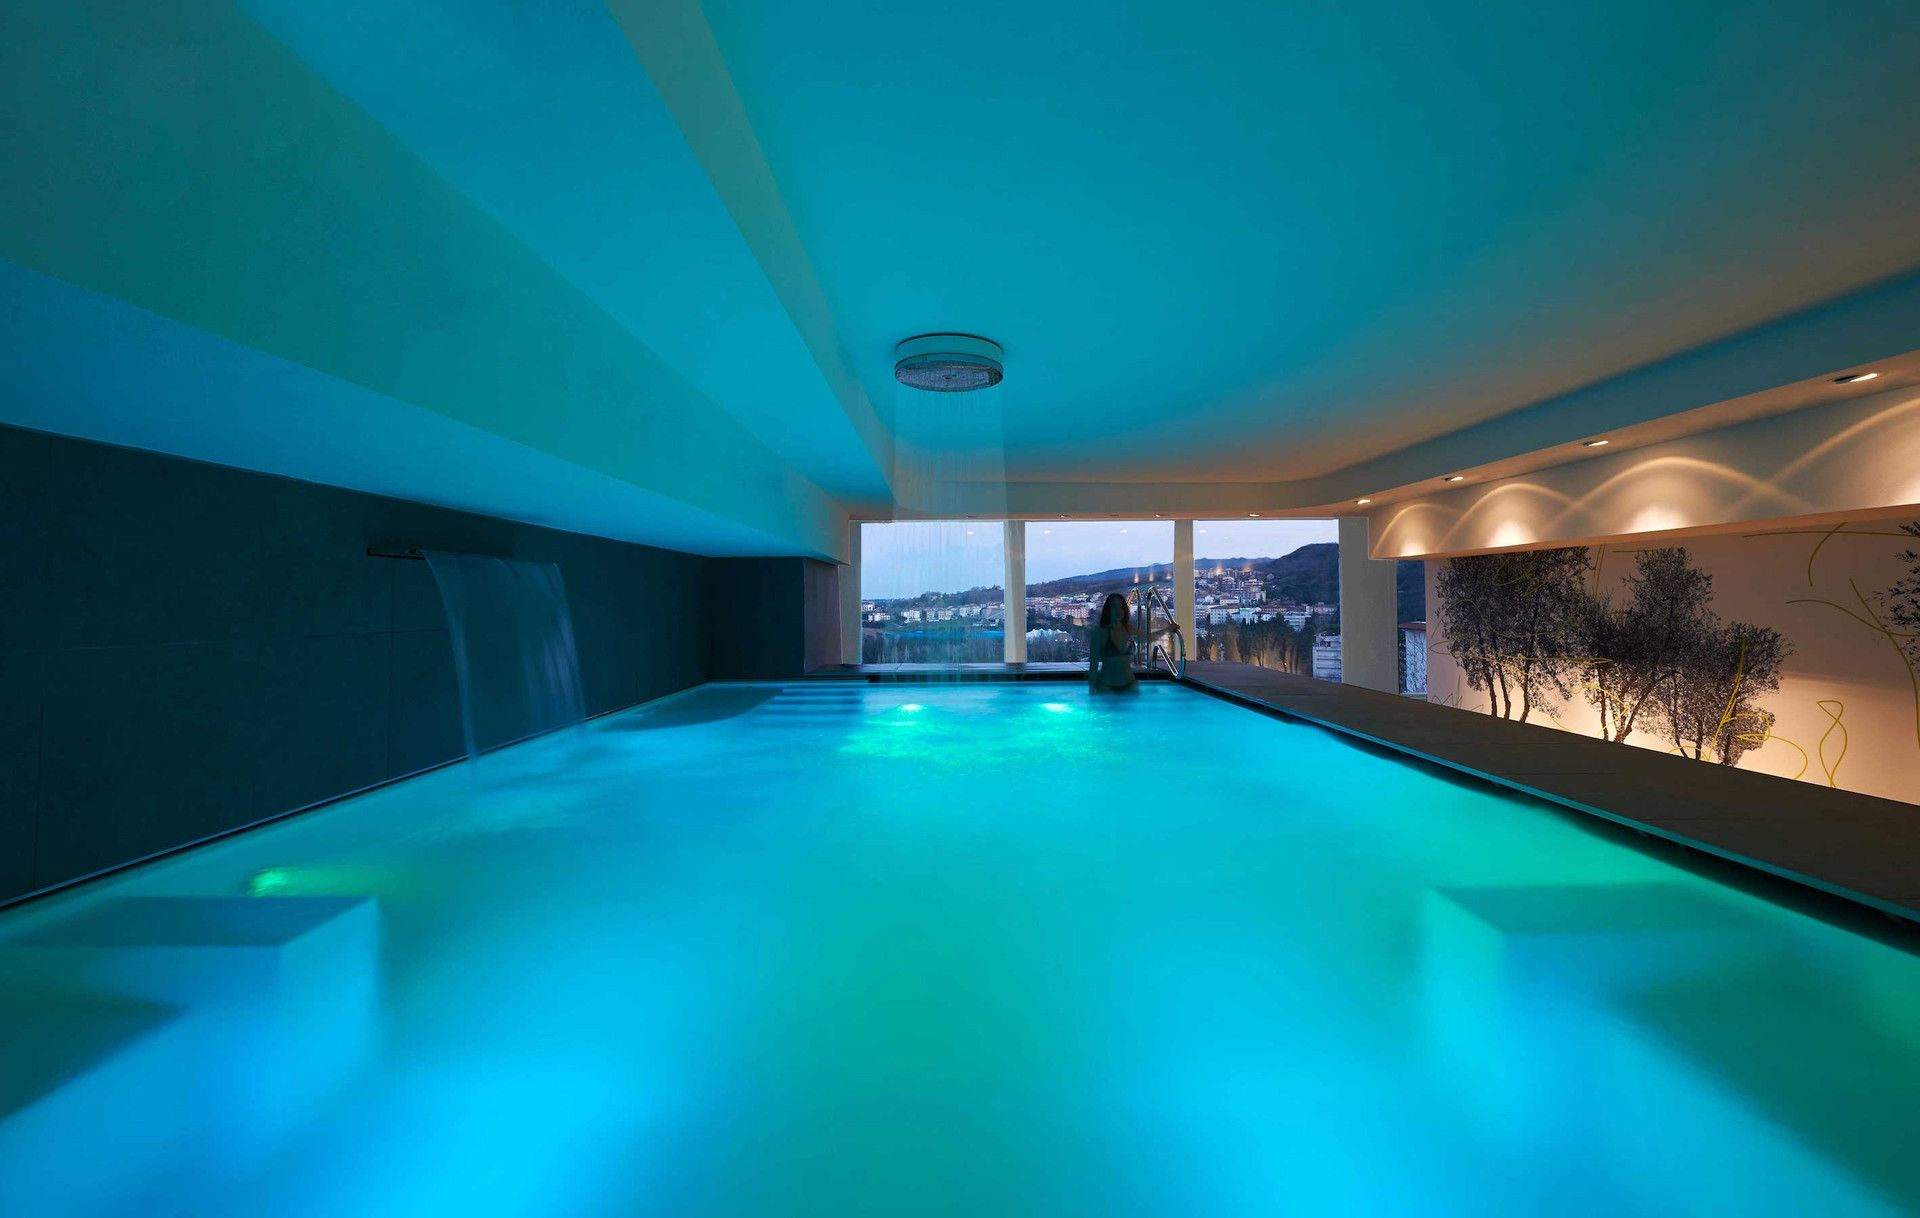 Gallery of SPA in Relax Park Verholy / YOD studio - 1 | Spas, Spa ...